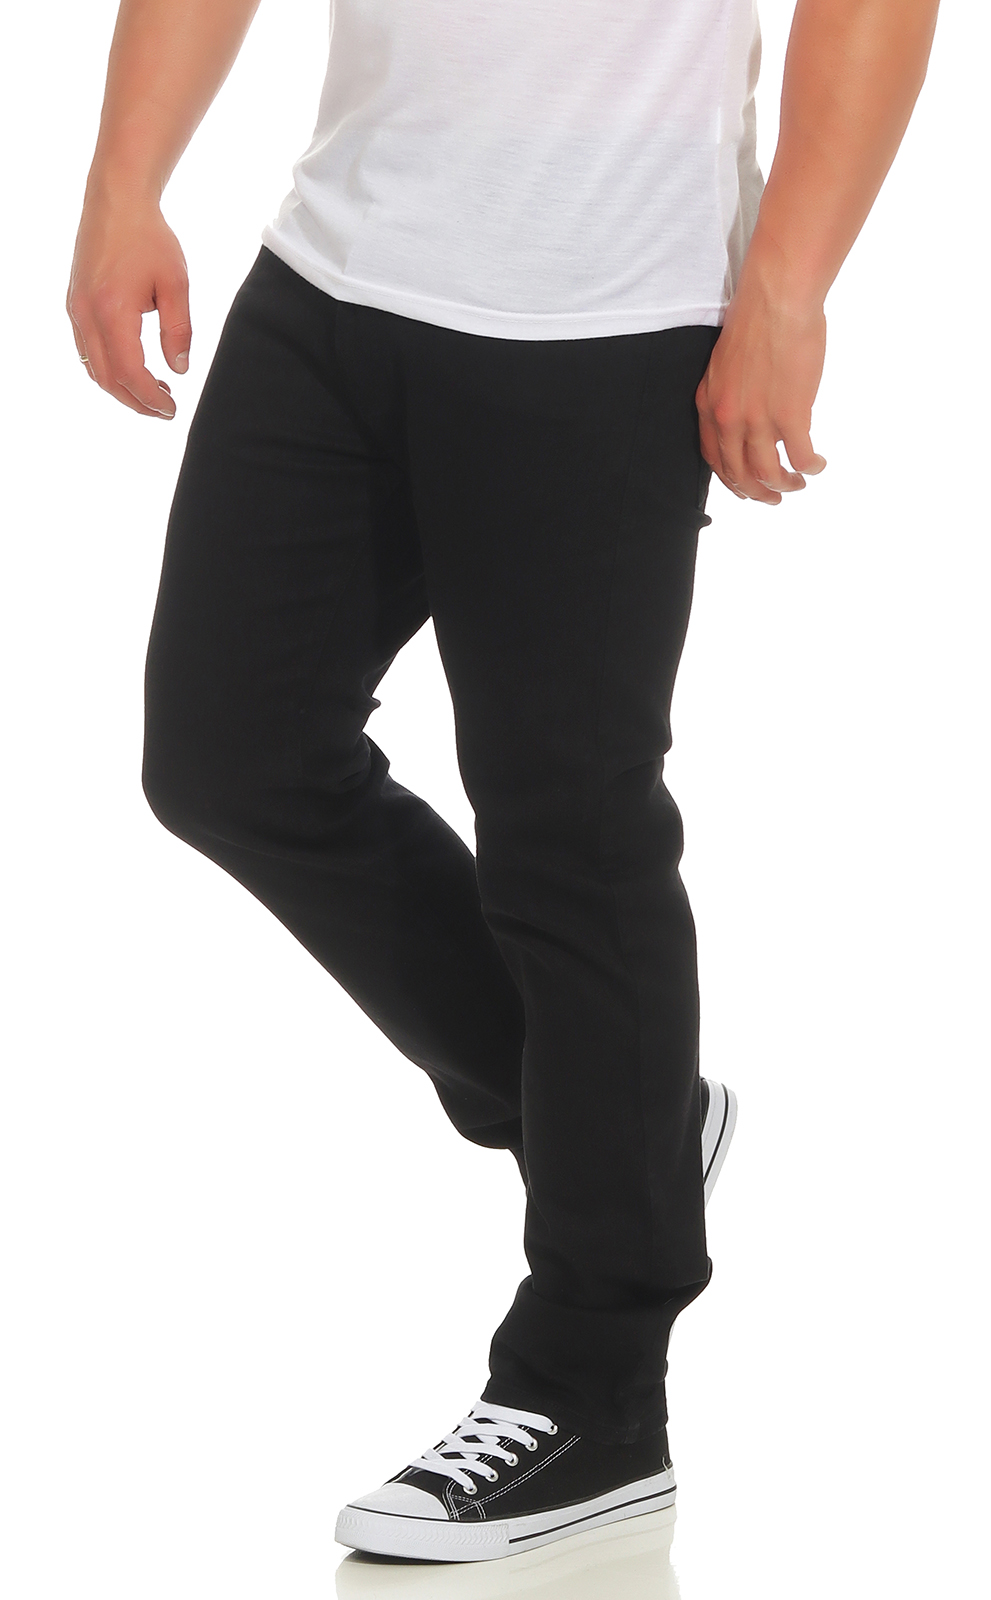 PIERRE-CARDIN-Herren-Jeans-Lyon-Hose-Tapered-Future-Flex-Super-Stretch-Premium-3 Indexbild 15